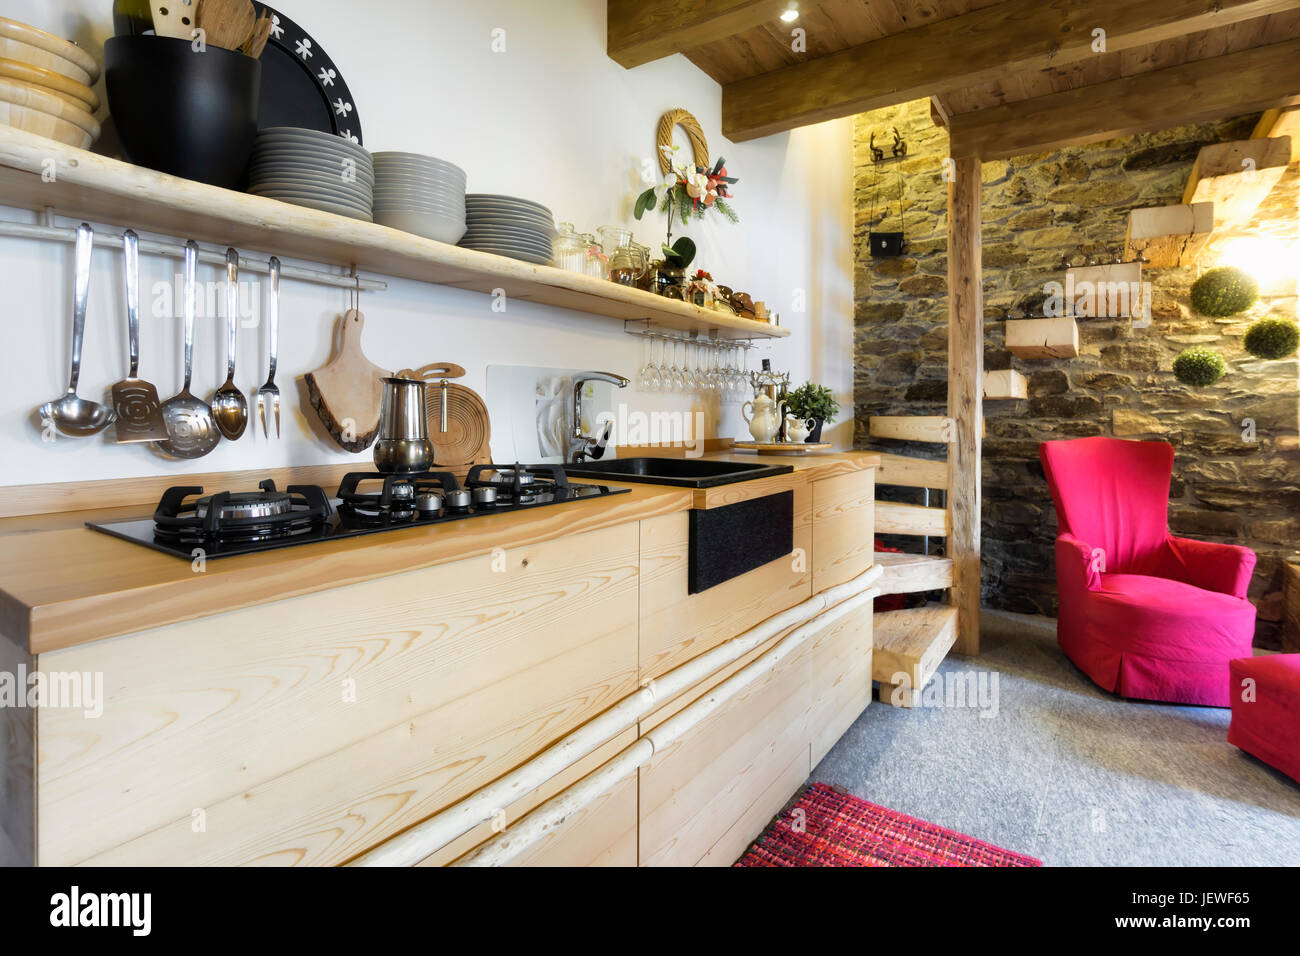 wooden kitchen in a country style cottage - Stock Image